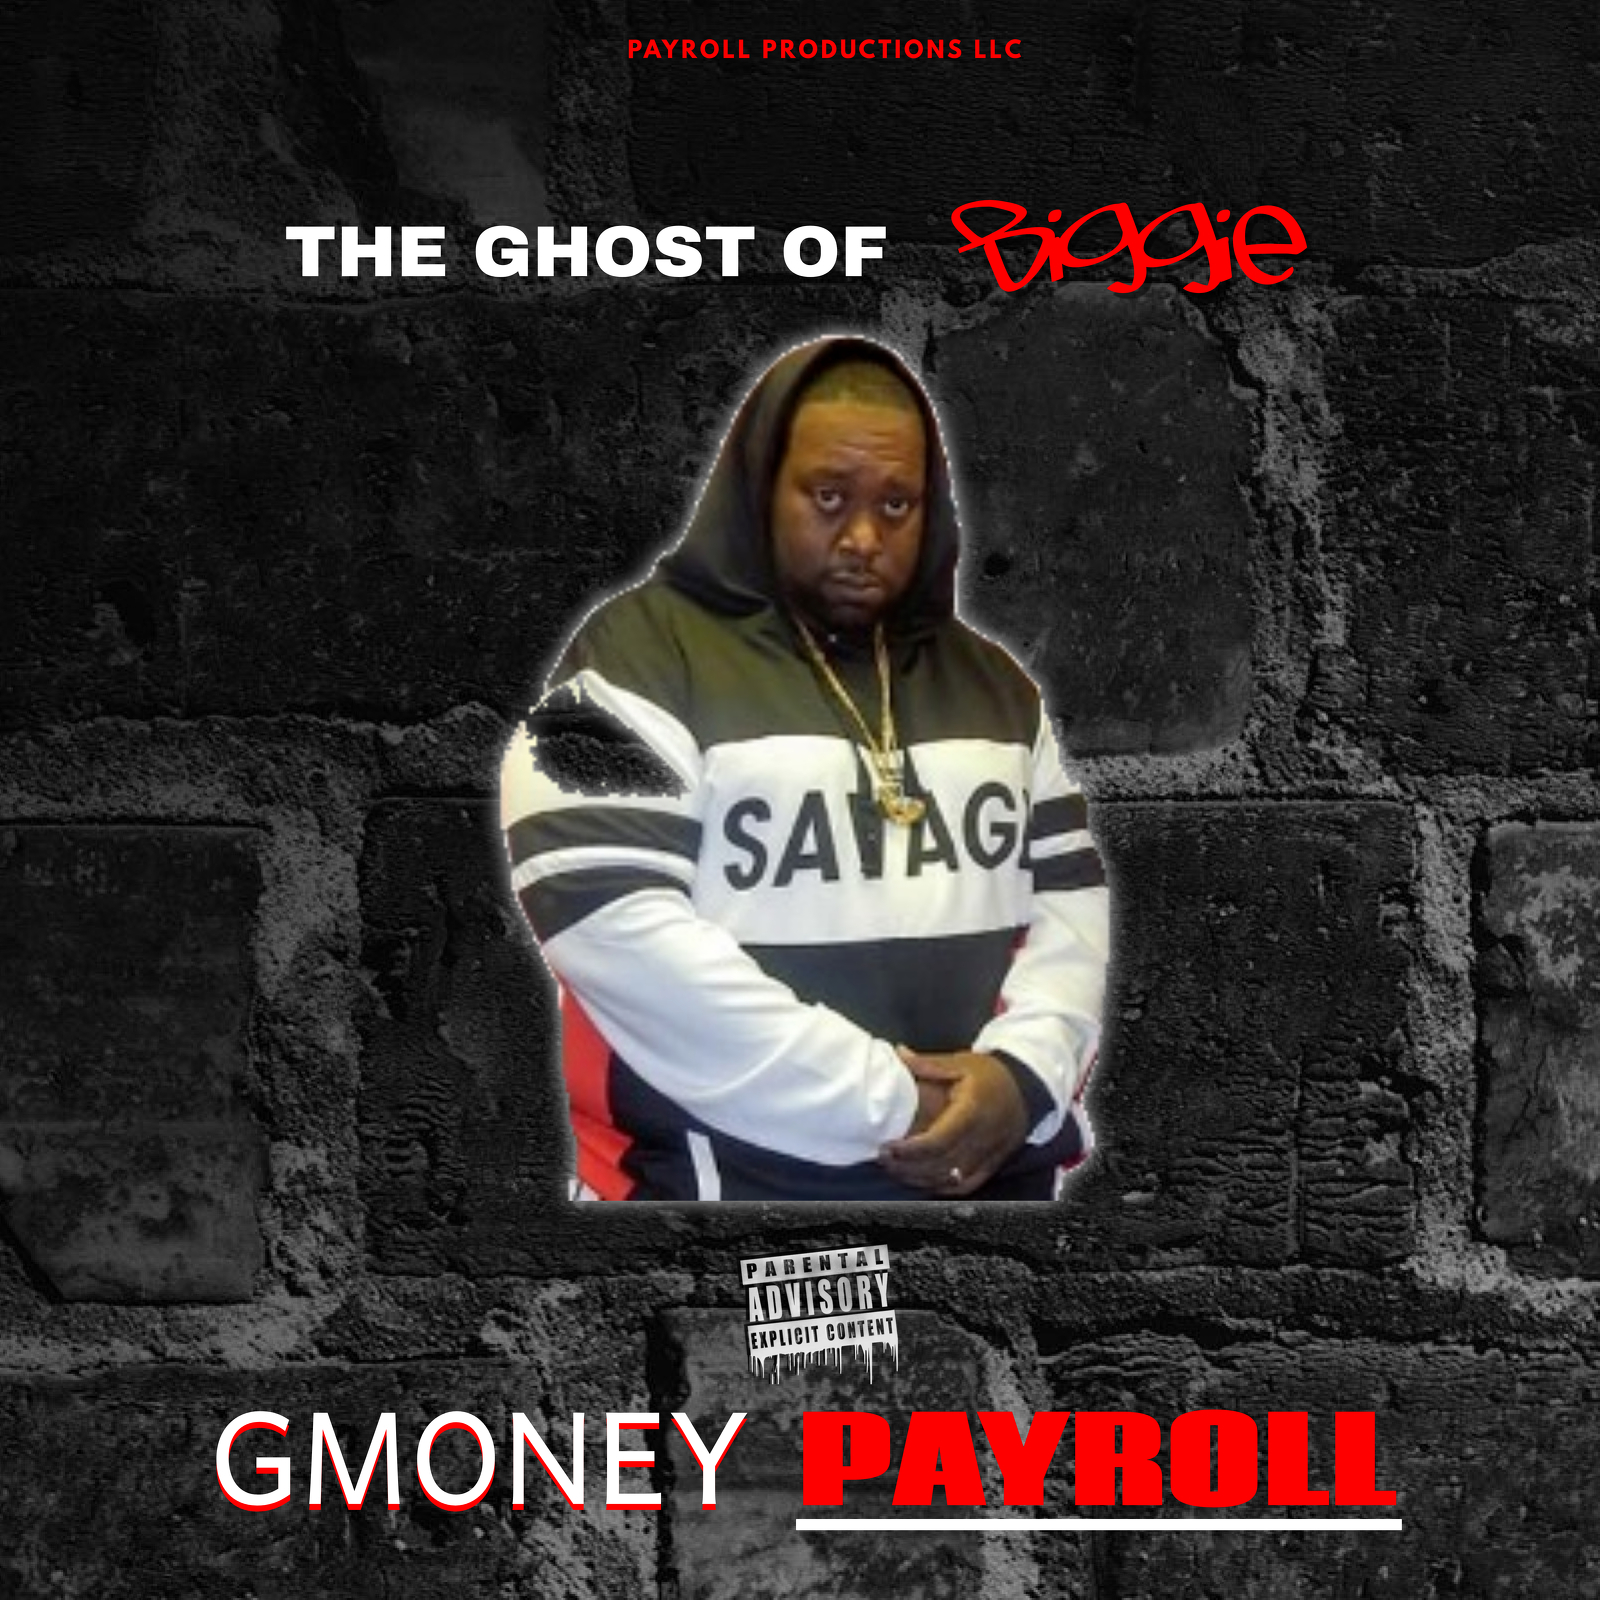 THE GHOST OF BIGGIE ALBUM ARTWORK- GMONEYPAYROLL